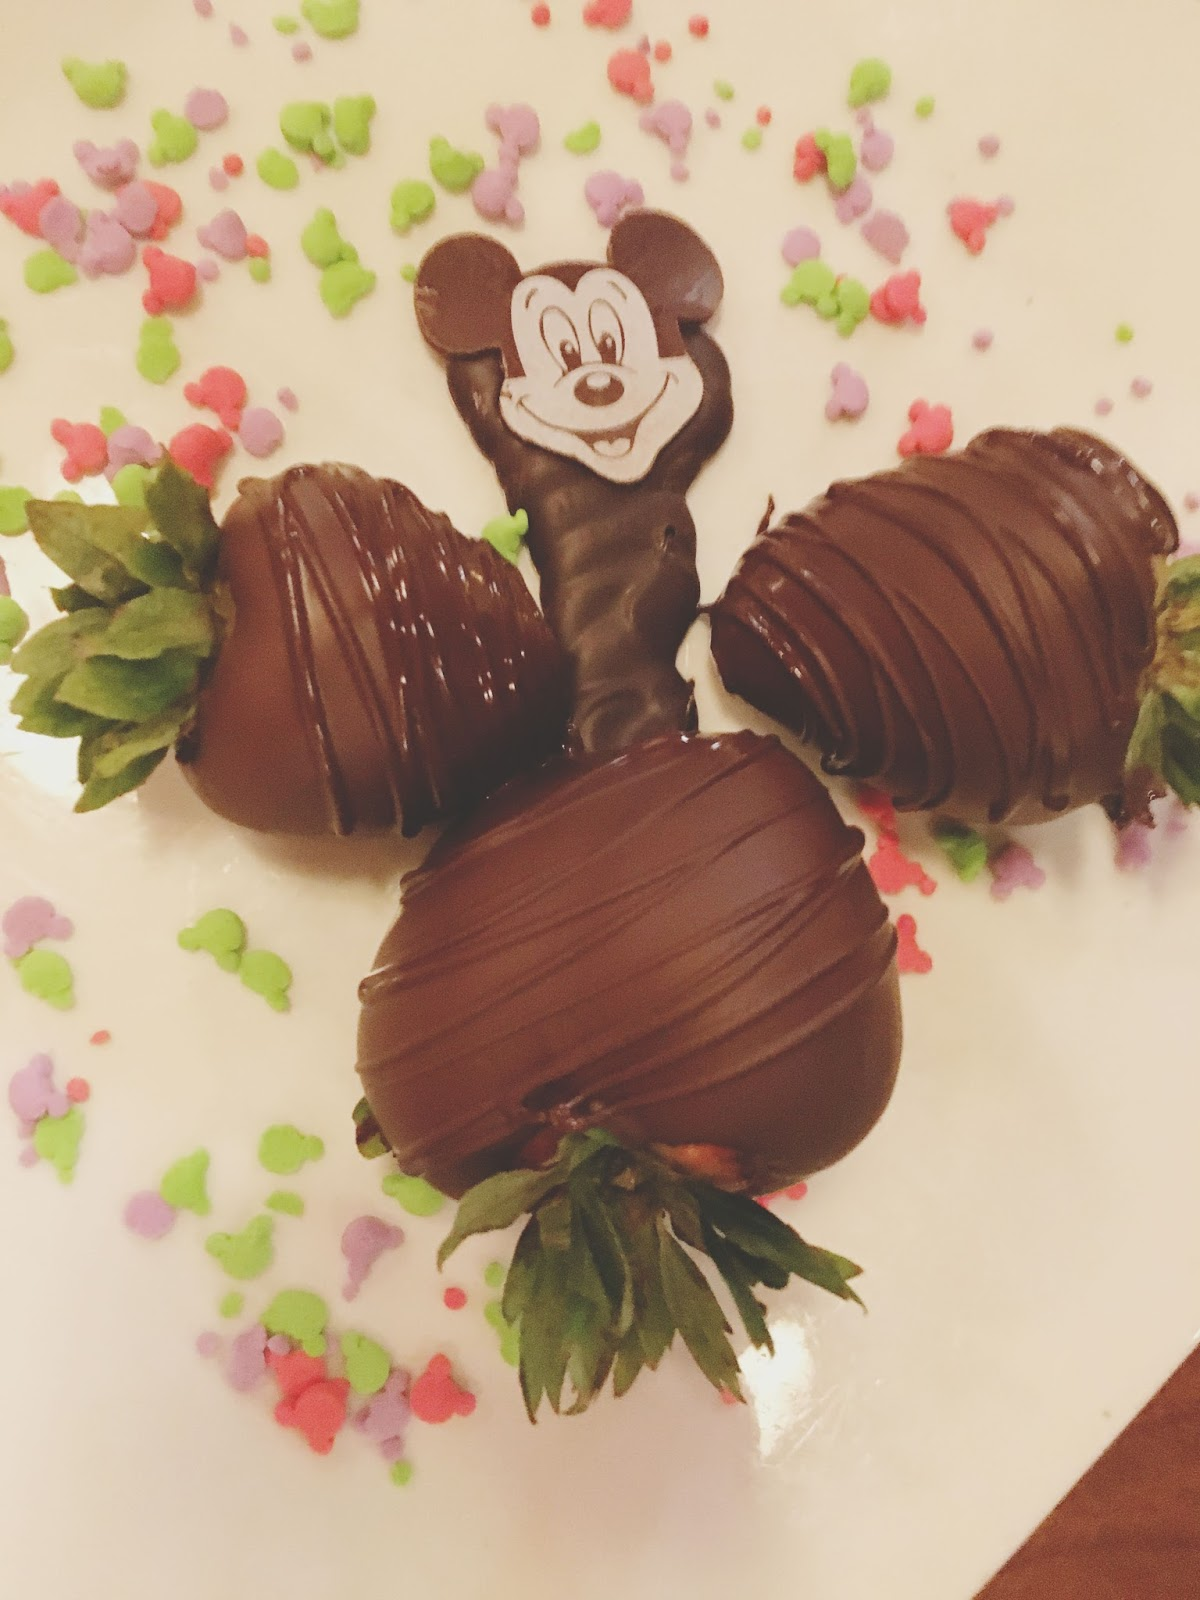 chocolate covered strawberries at Kona Cafe in Disney World, Florida